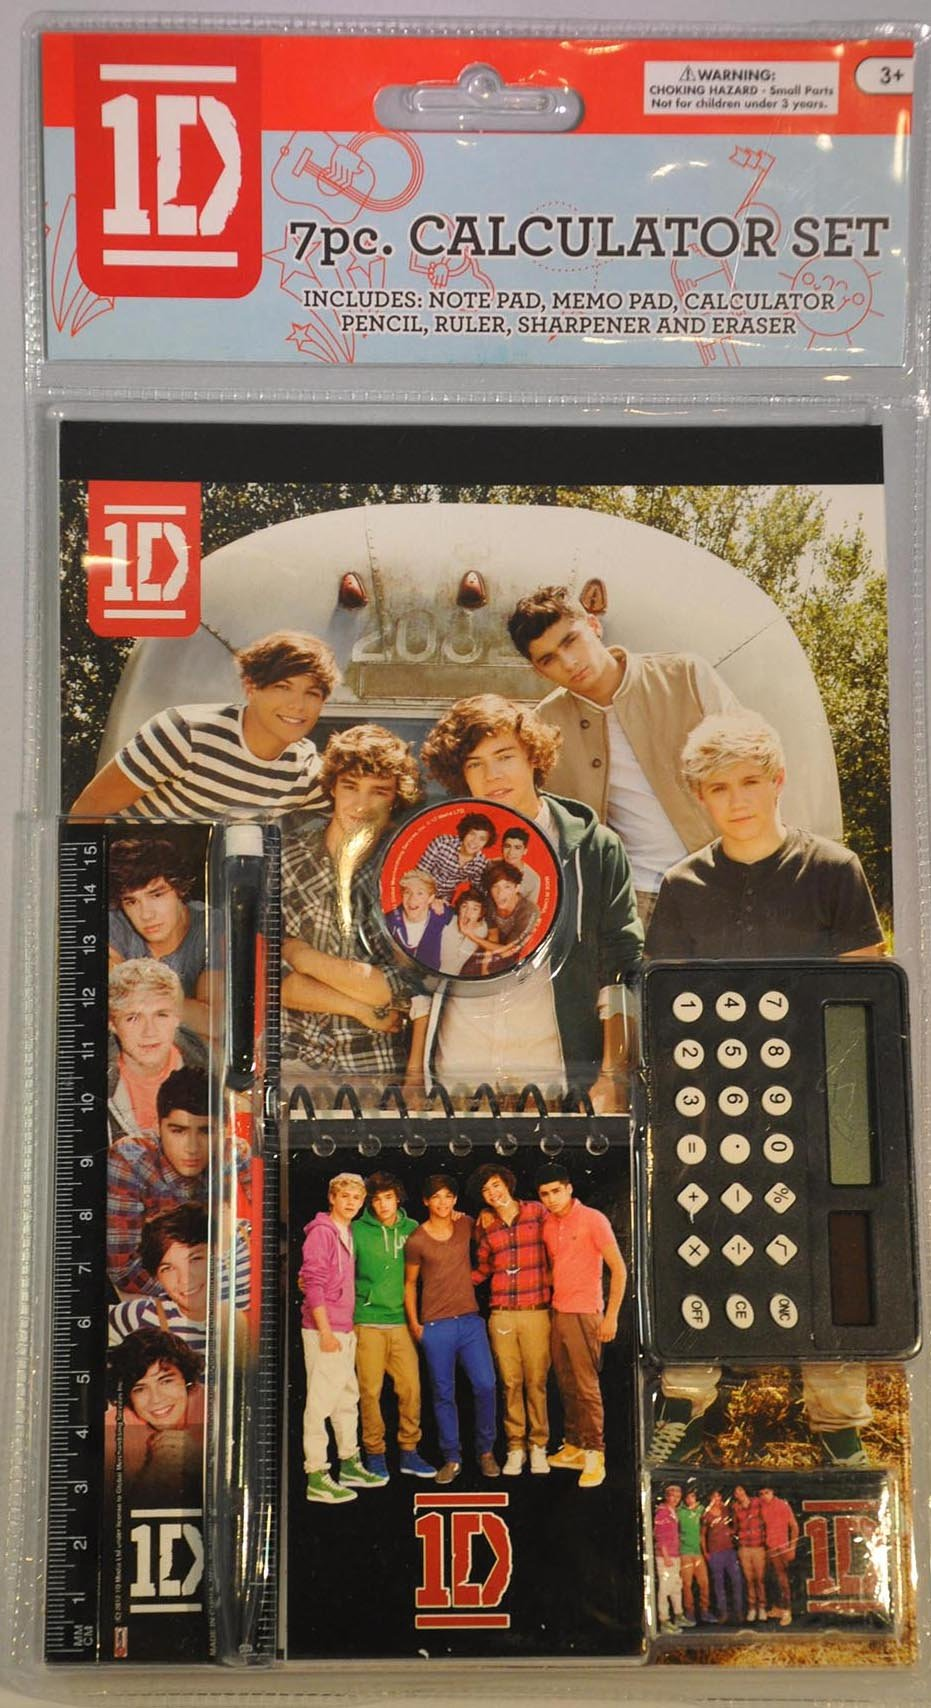 One Direction 7pc Calculator Set - 1D Stationary & School Supplies